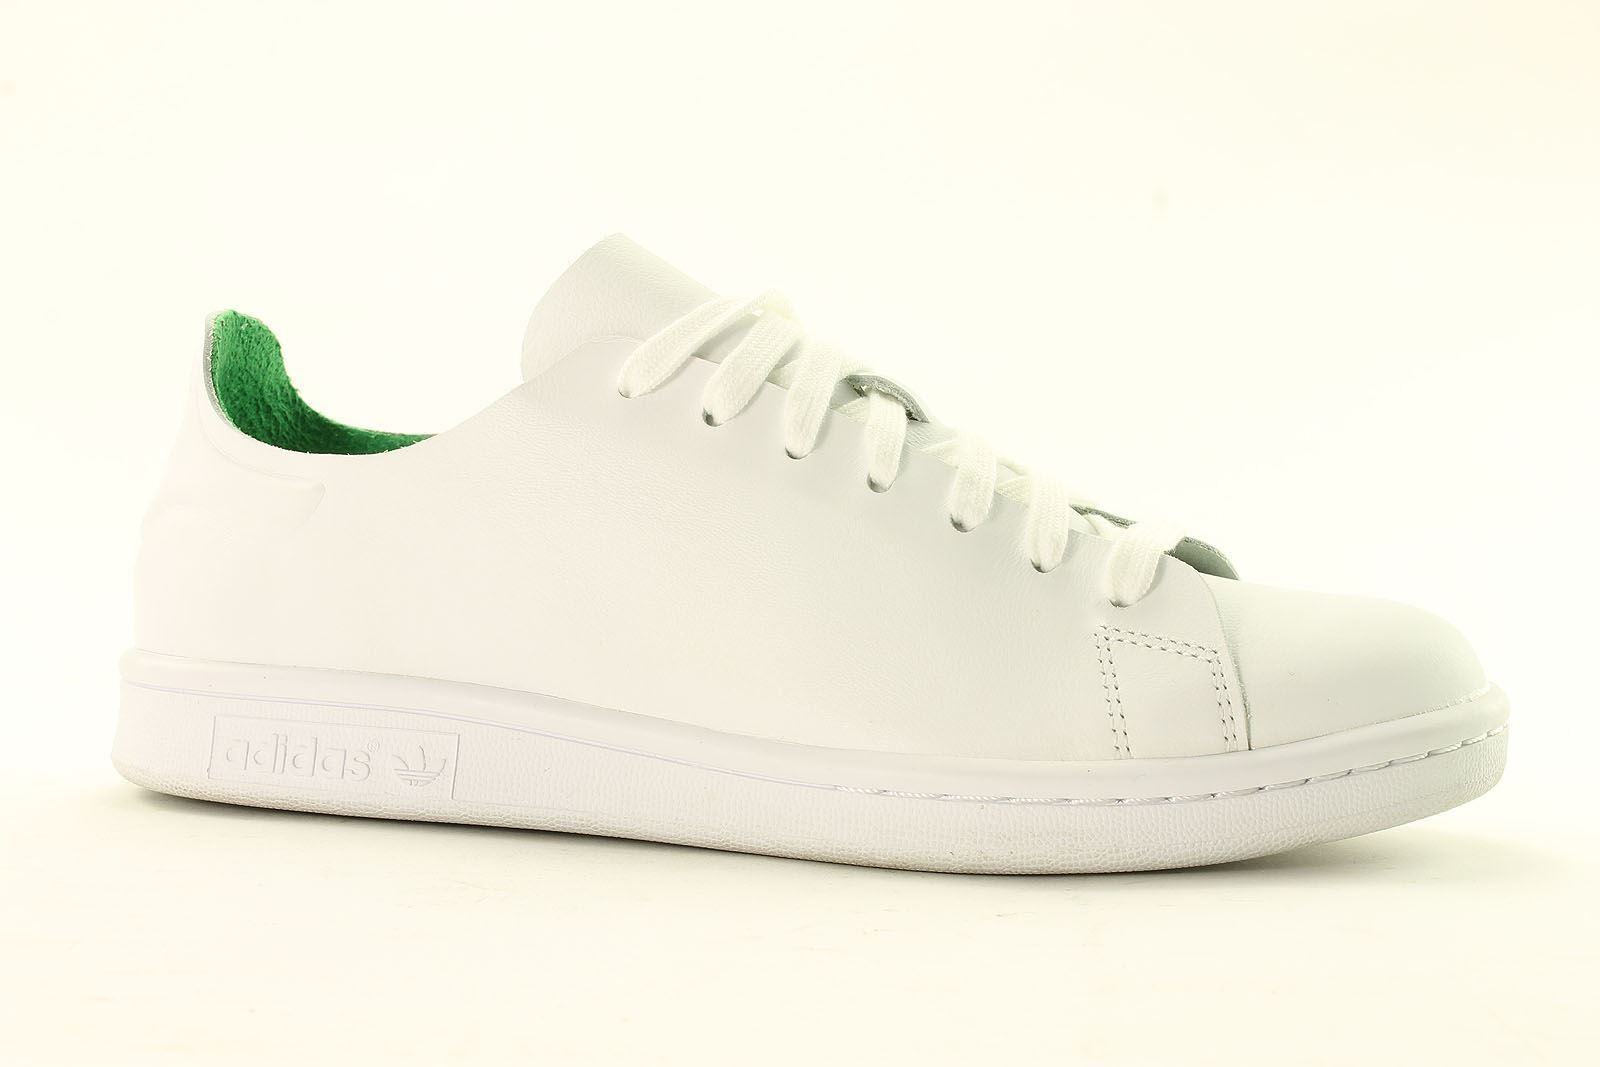 adidas Stan Smith Nude S76544 Damenschuhe TrainersOriginalsUK 4 to 9.5 Only